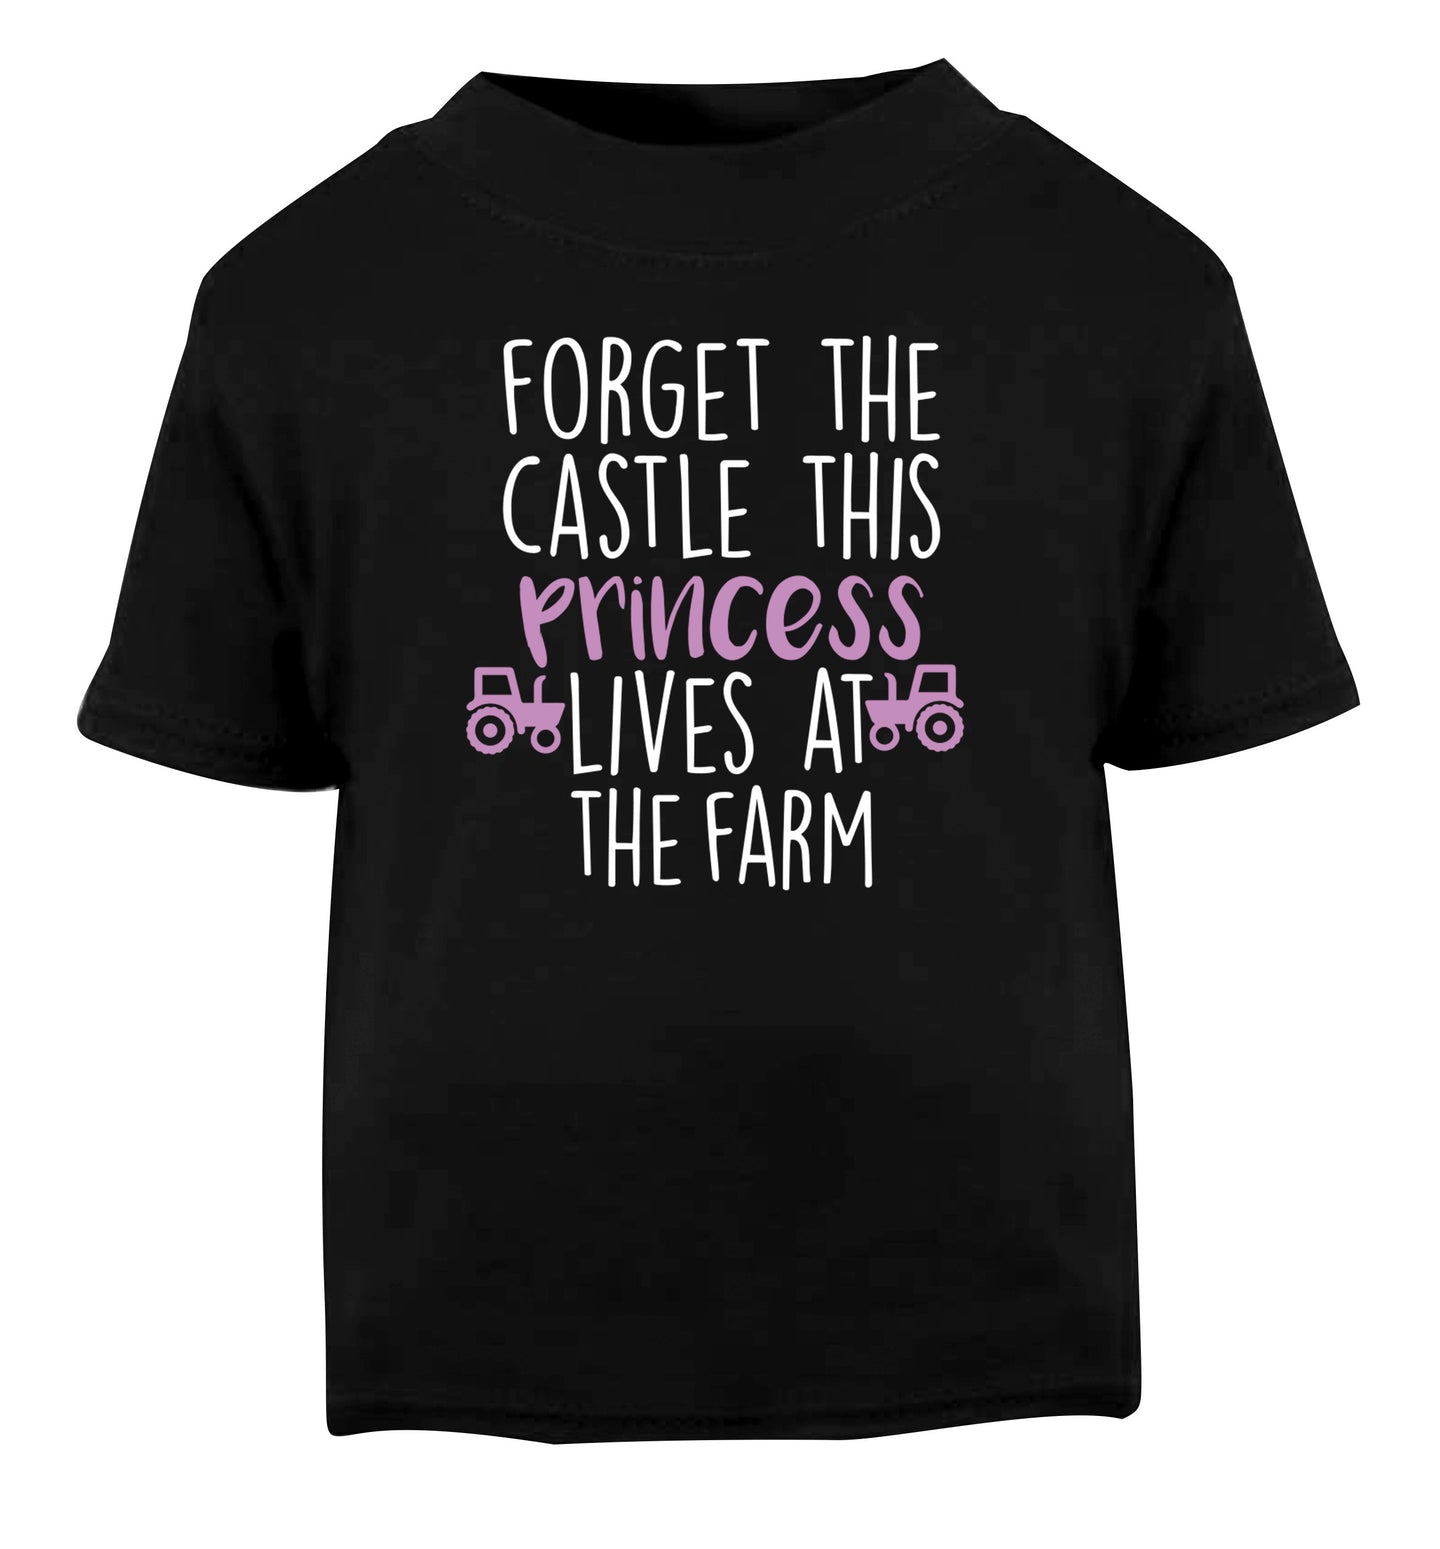 Forget the castle this princess lives at the farm Black Baby Toddler Tshirt 2 years